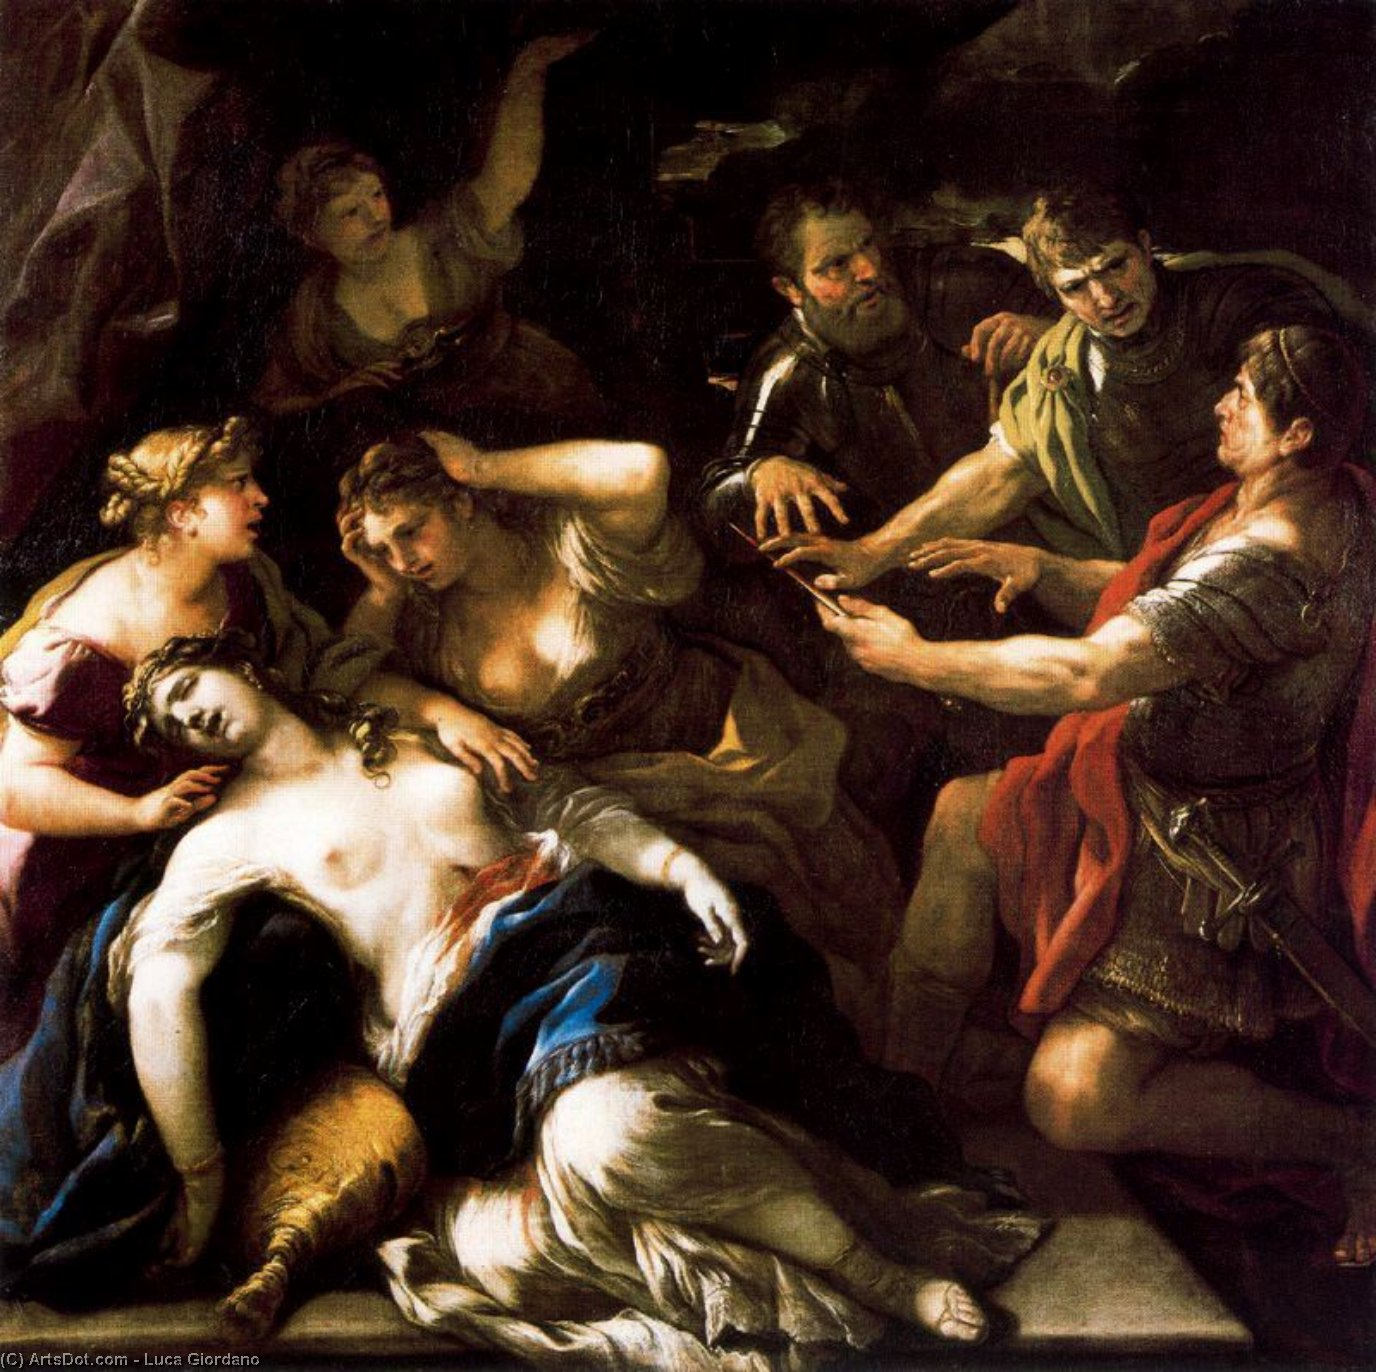 The Oath of Brutus against Tarquin the death of Lucrecia by Luca Giordano (1634-1705, Italy)